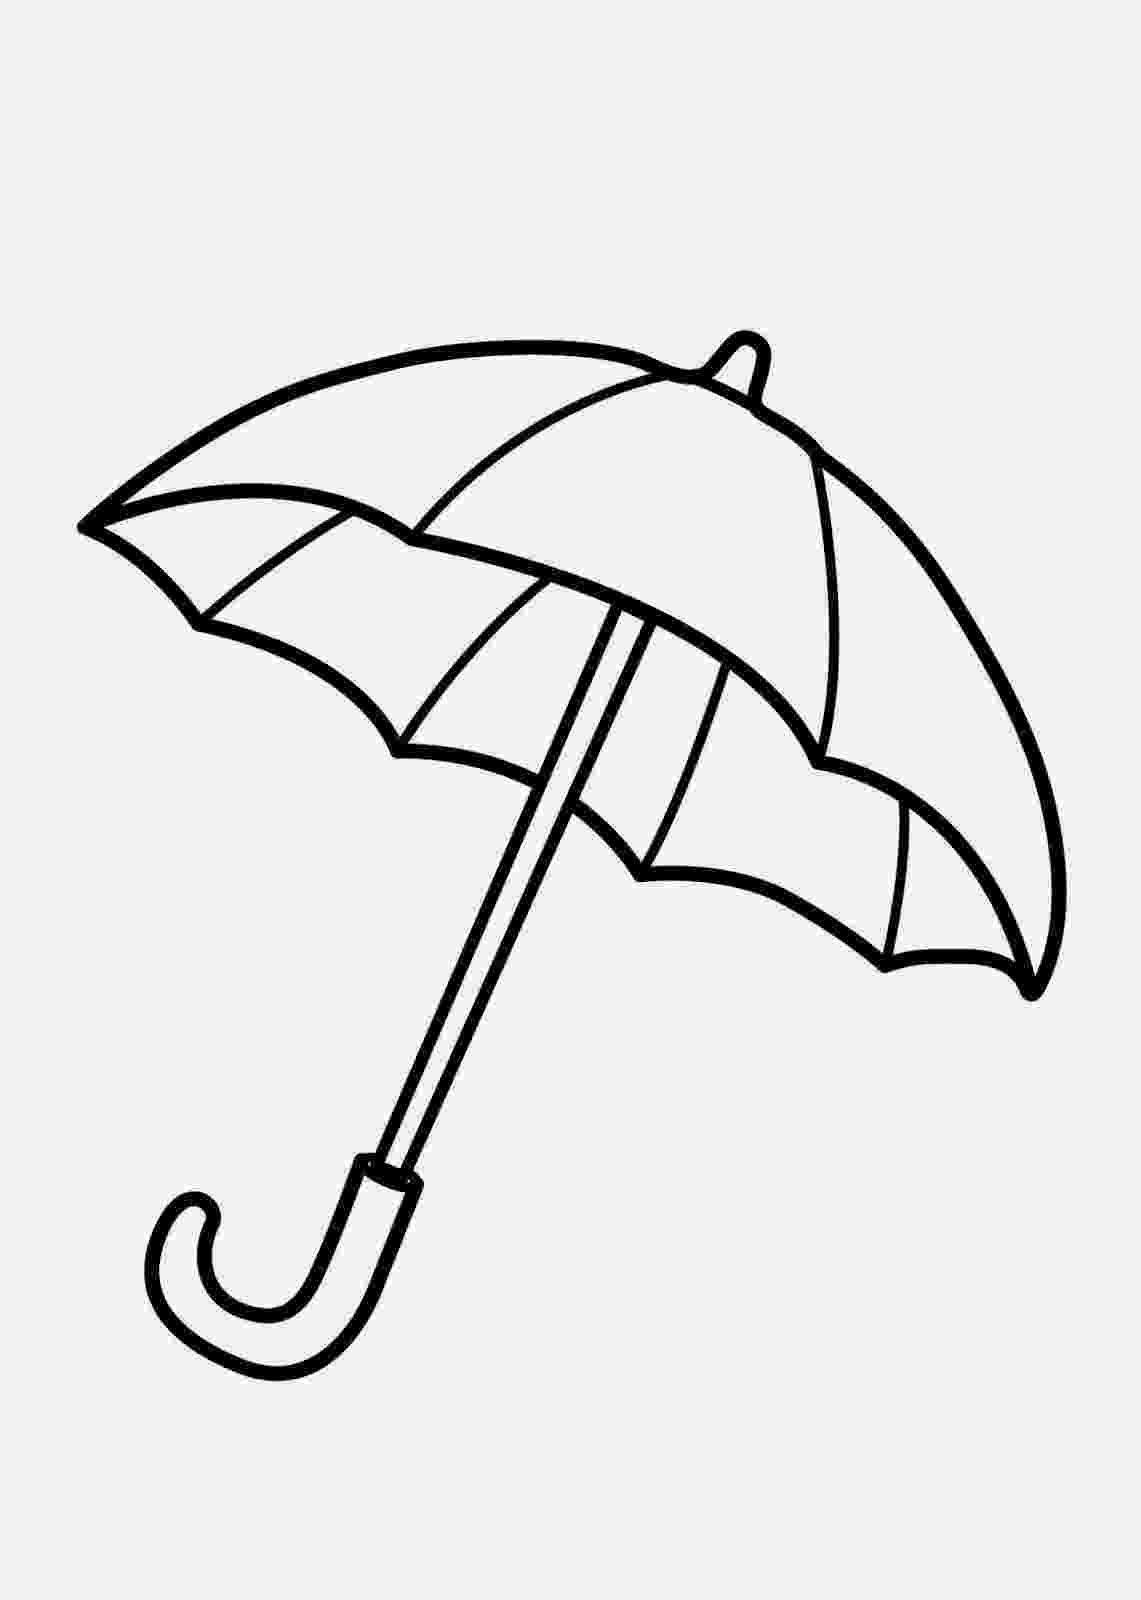 umbrella coloring page umbrella coloring pages best coloring pages for kids coloring umbrella page